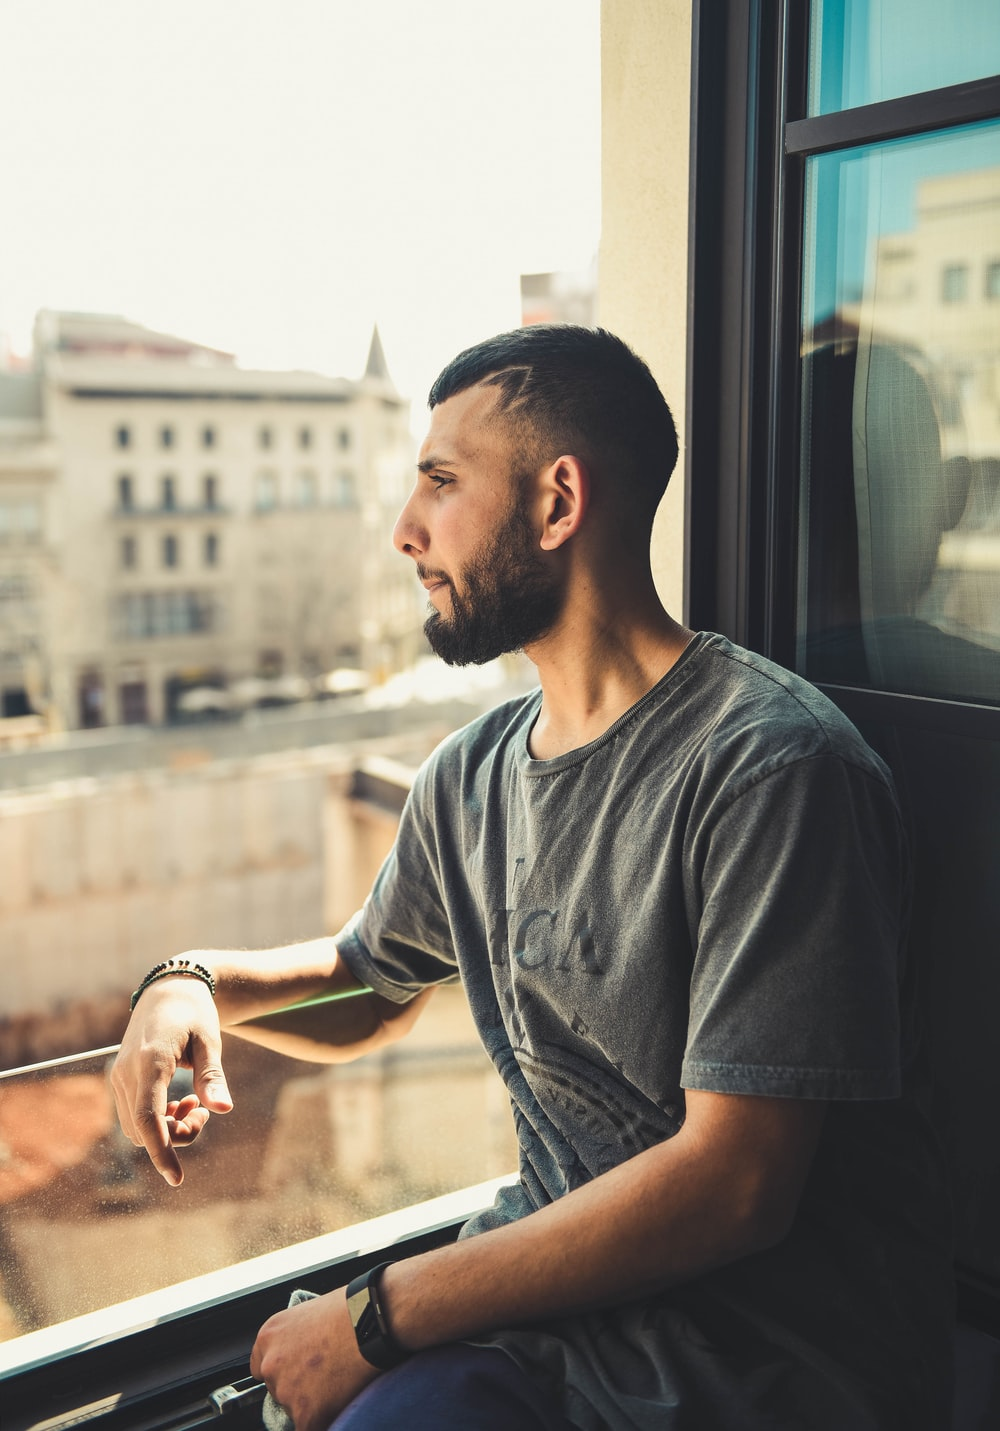 man in gray t-shirt by glass window